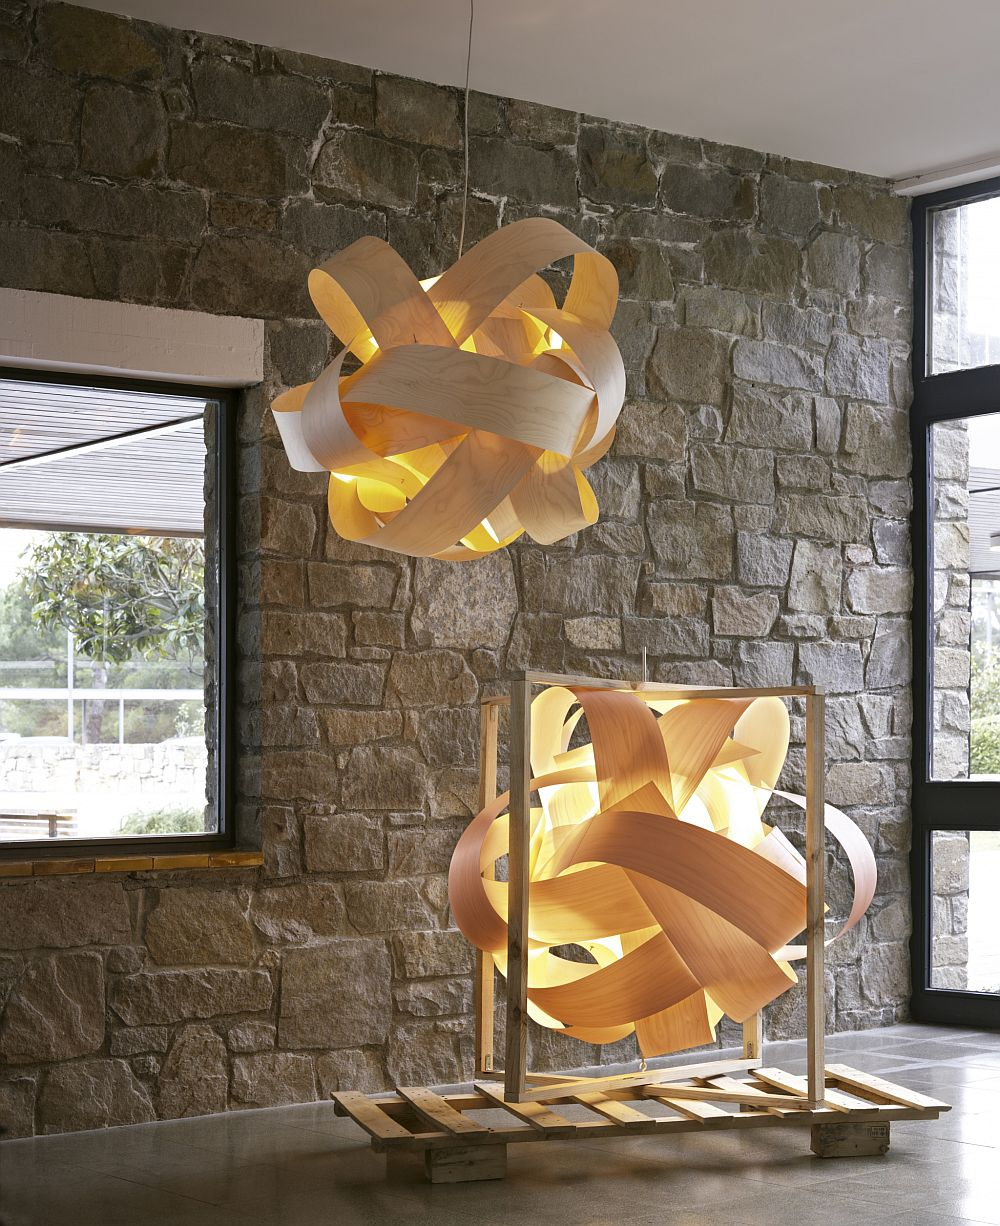 Thin slats of birch wood knotted around stainless steel frame shape the stunning pendant